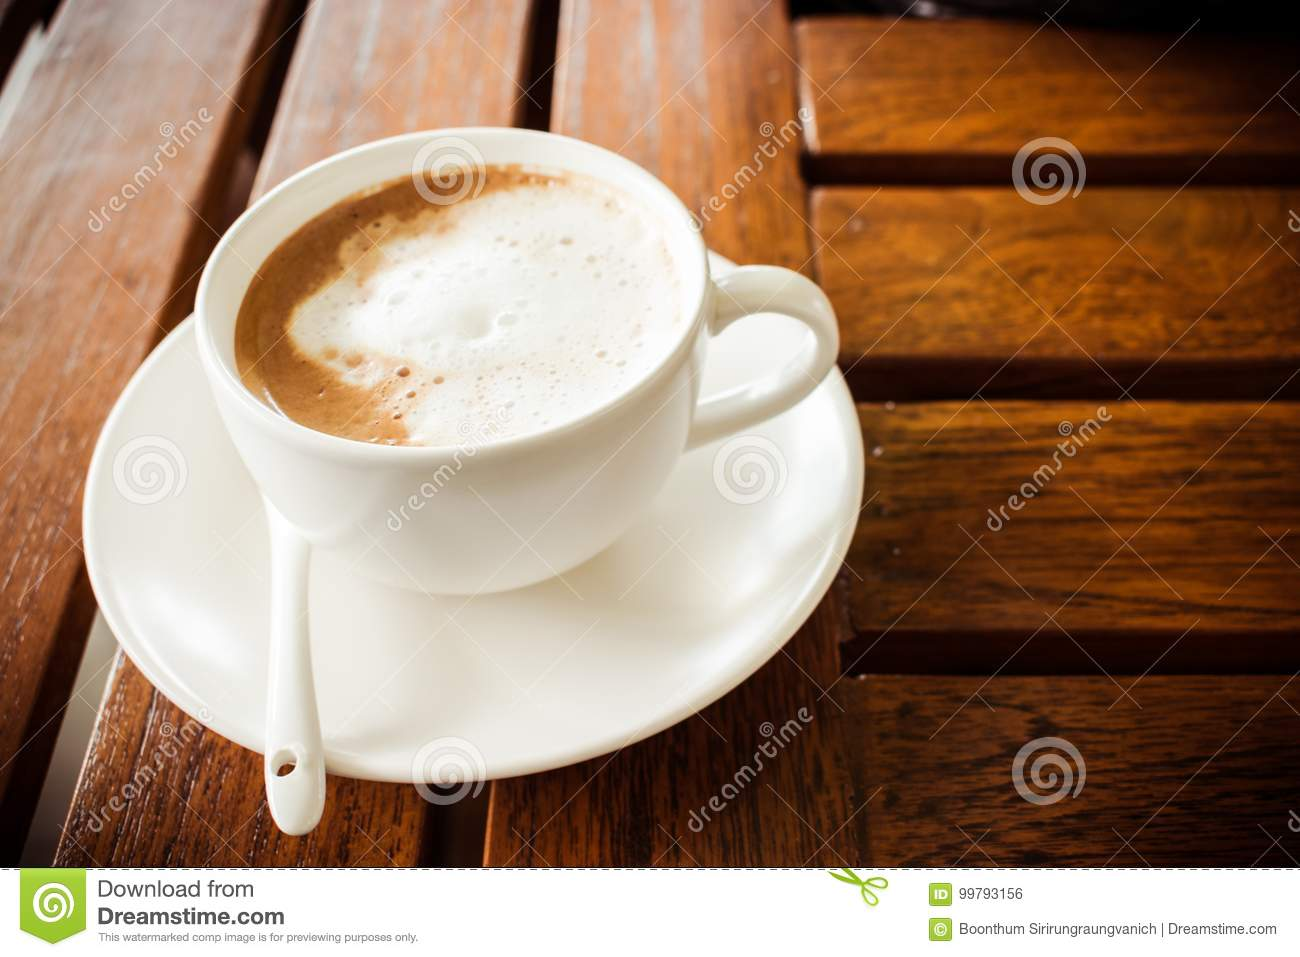 Coffee and glass on a wooden table